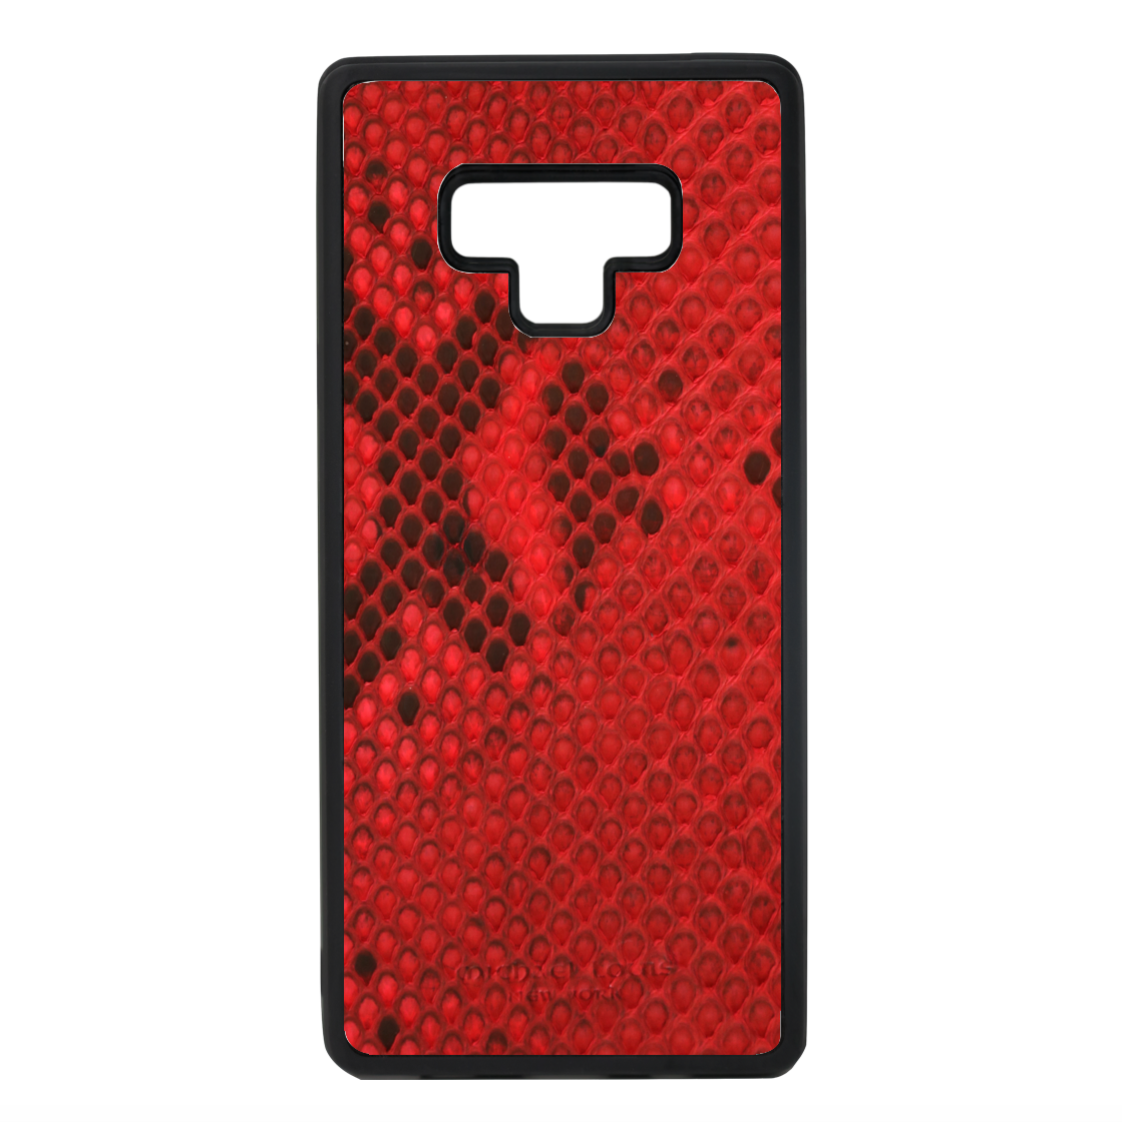 cheap for discount 0dc26 aa0ff Red Snakeskin Galaxy Note 9 Case